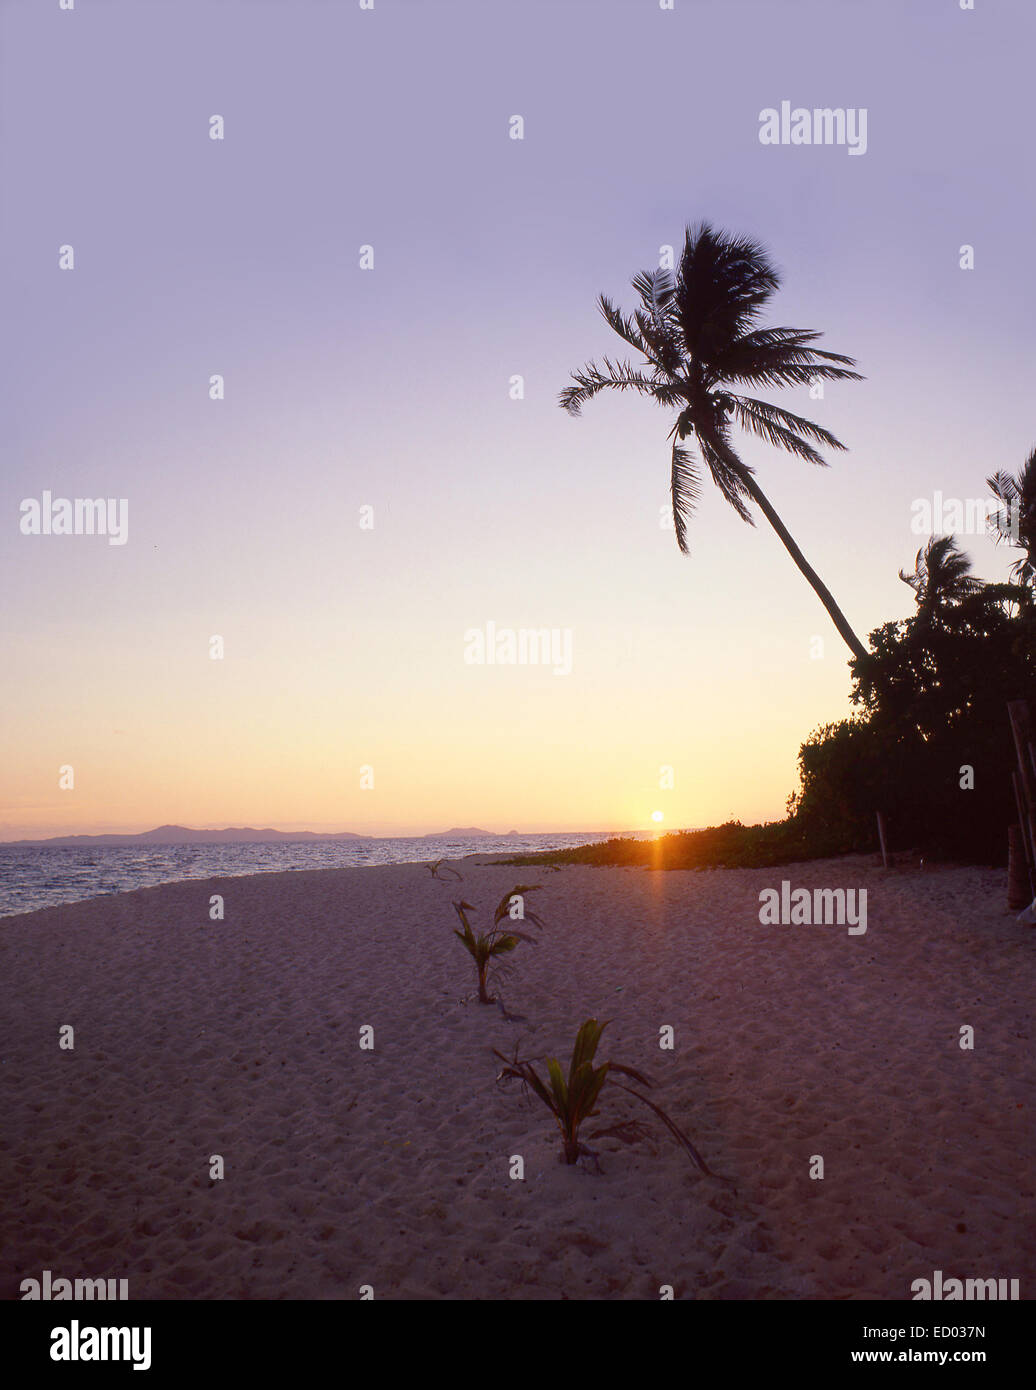 Tropical sunset, Beachcomber Island Resort, Beachcomber Island, Mamanuca Islands, Viti Levu, Republic of Fiji - Stock Image